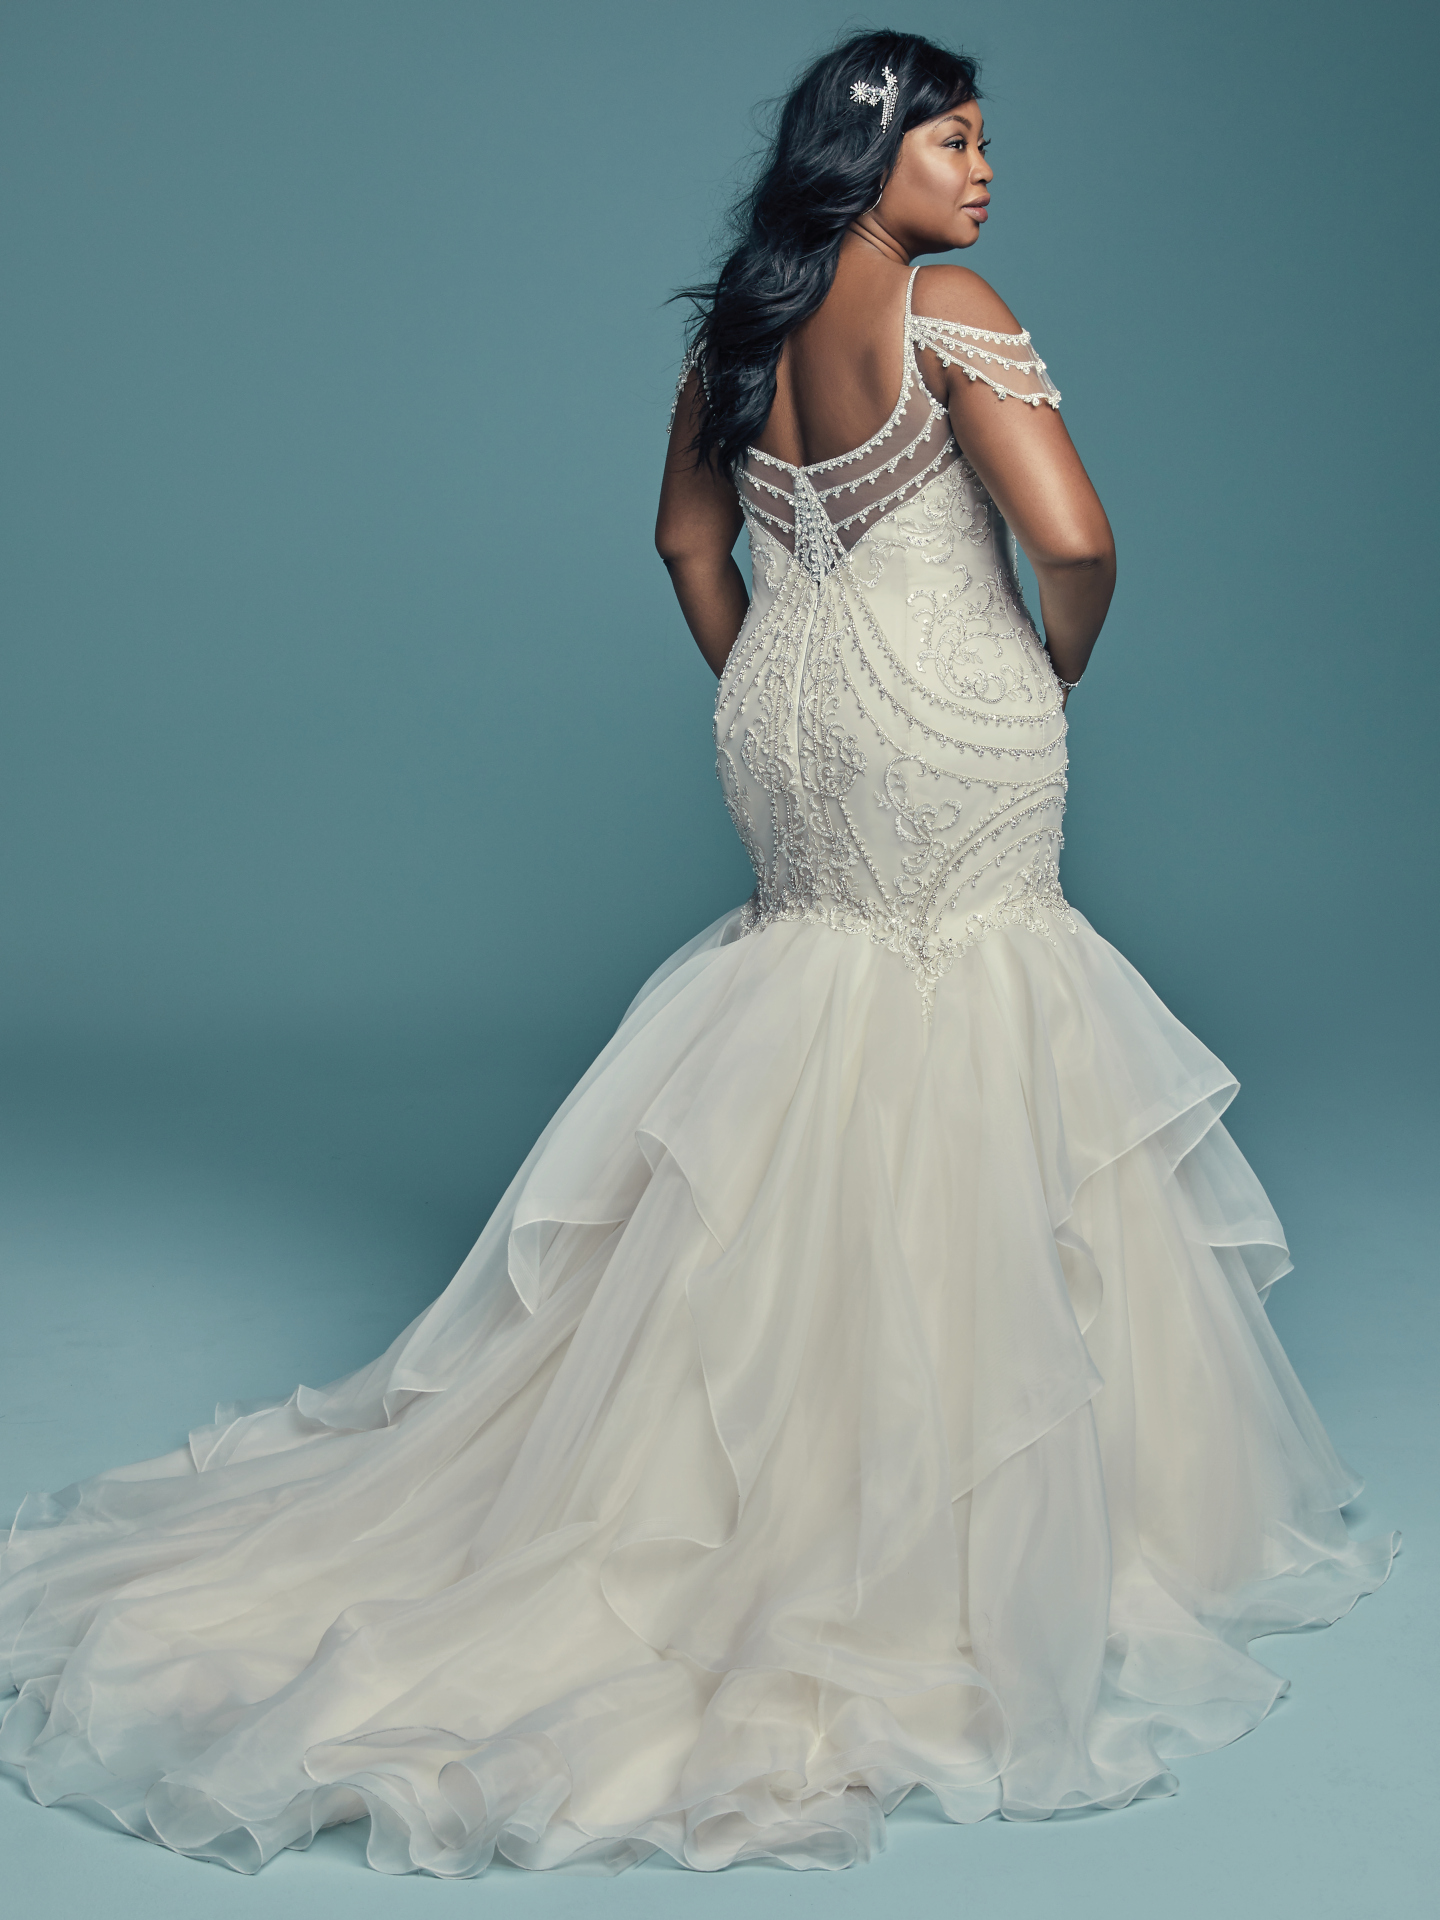 Flattering Wedding Dresses For Curvy Brides Brinkley Lynette By Maggie Sottero